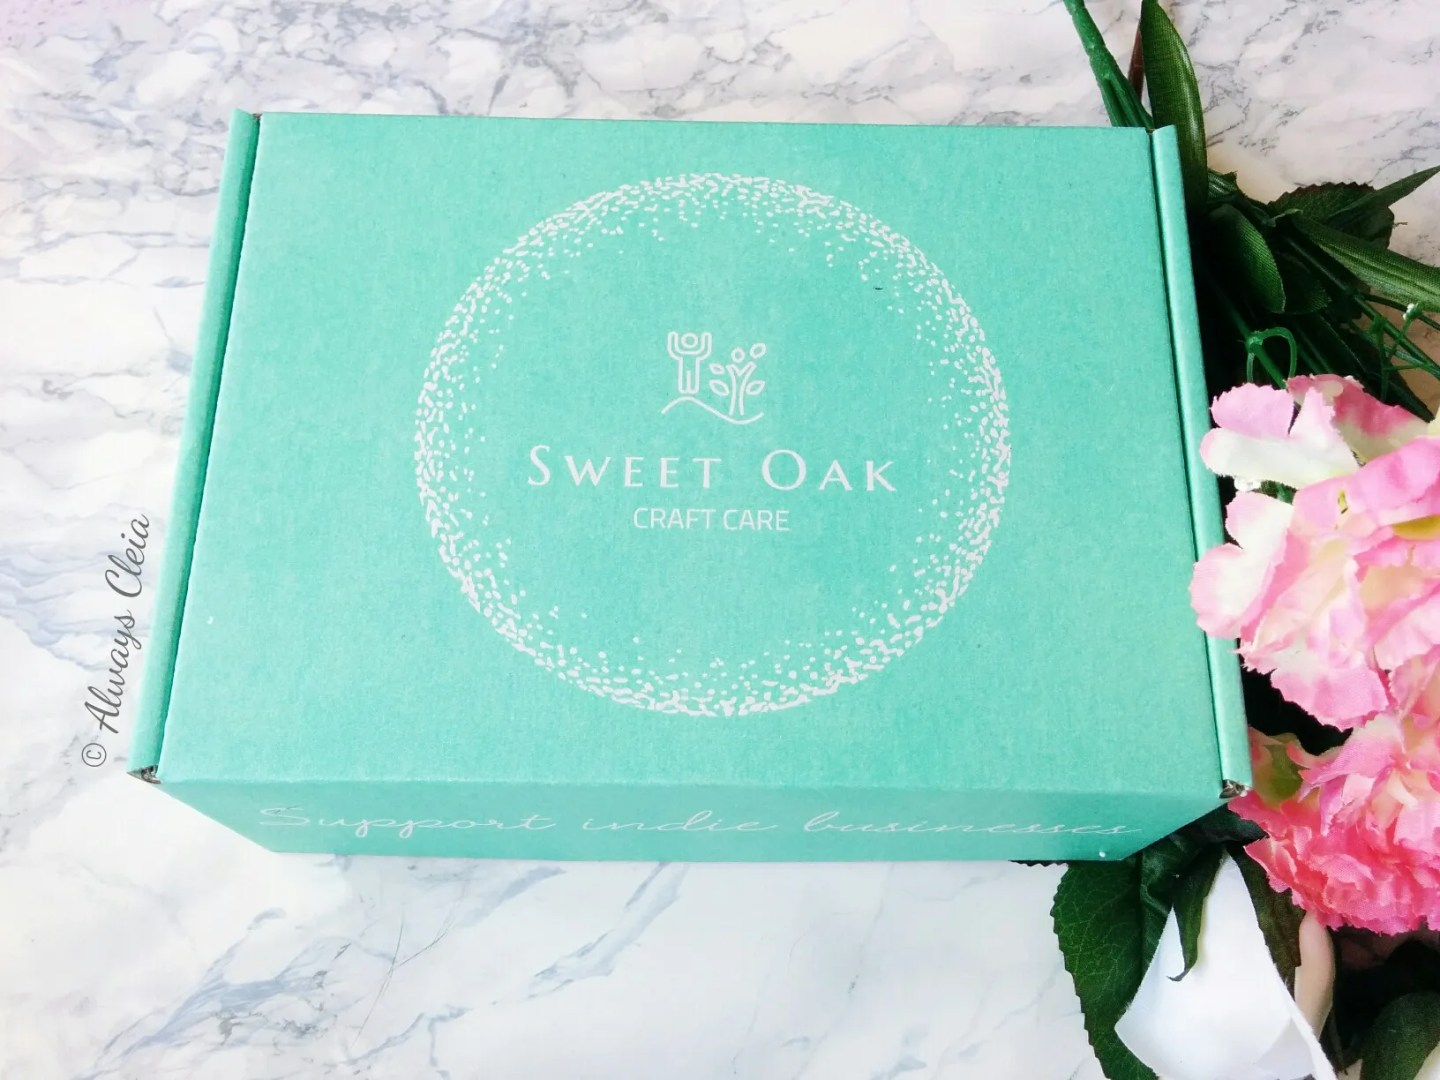 Sweet Oak Craft Care Subscription